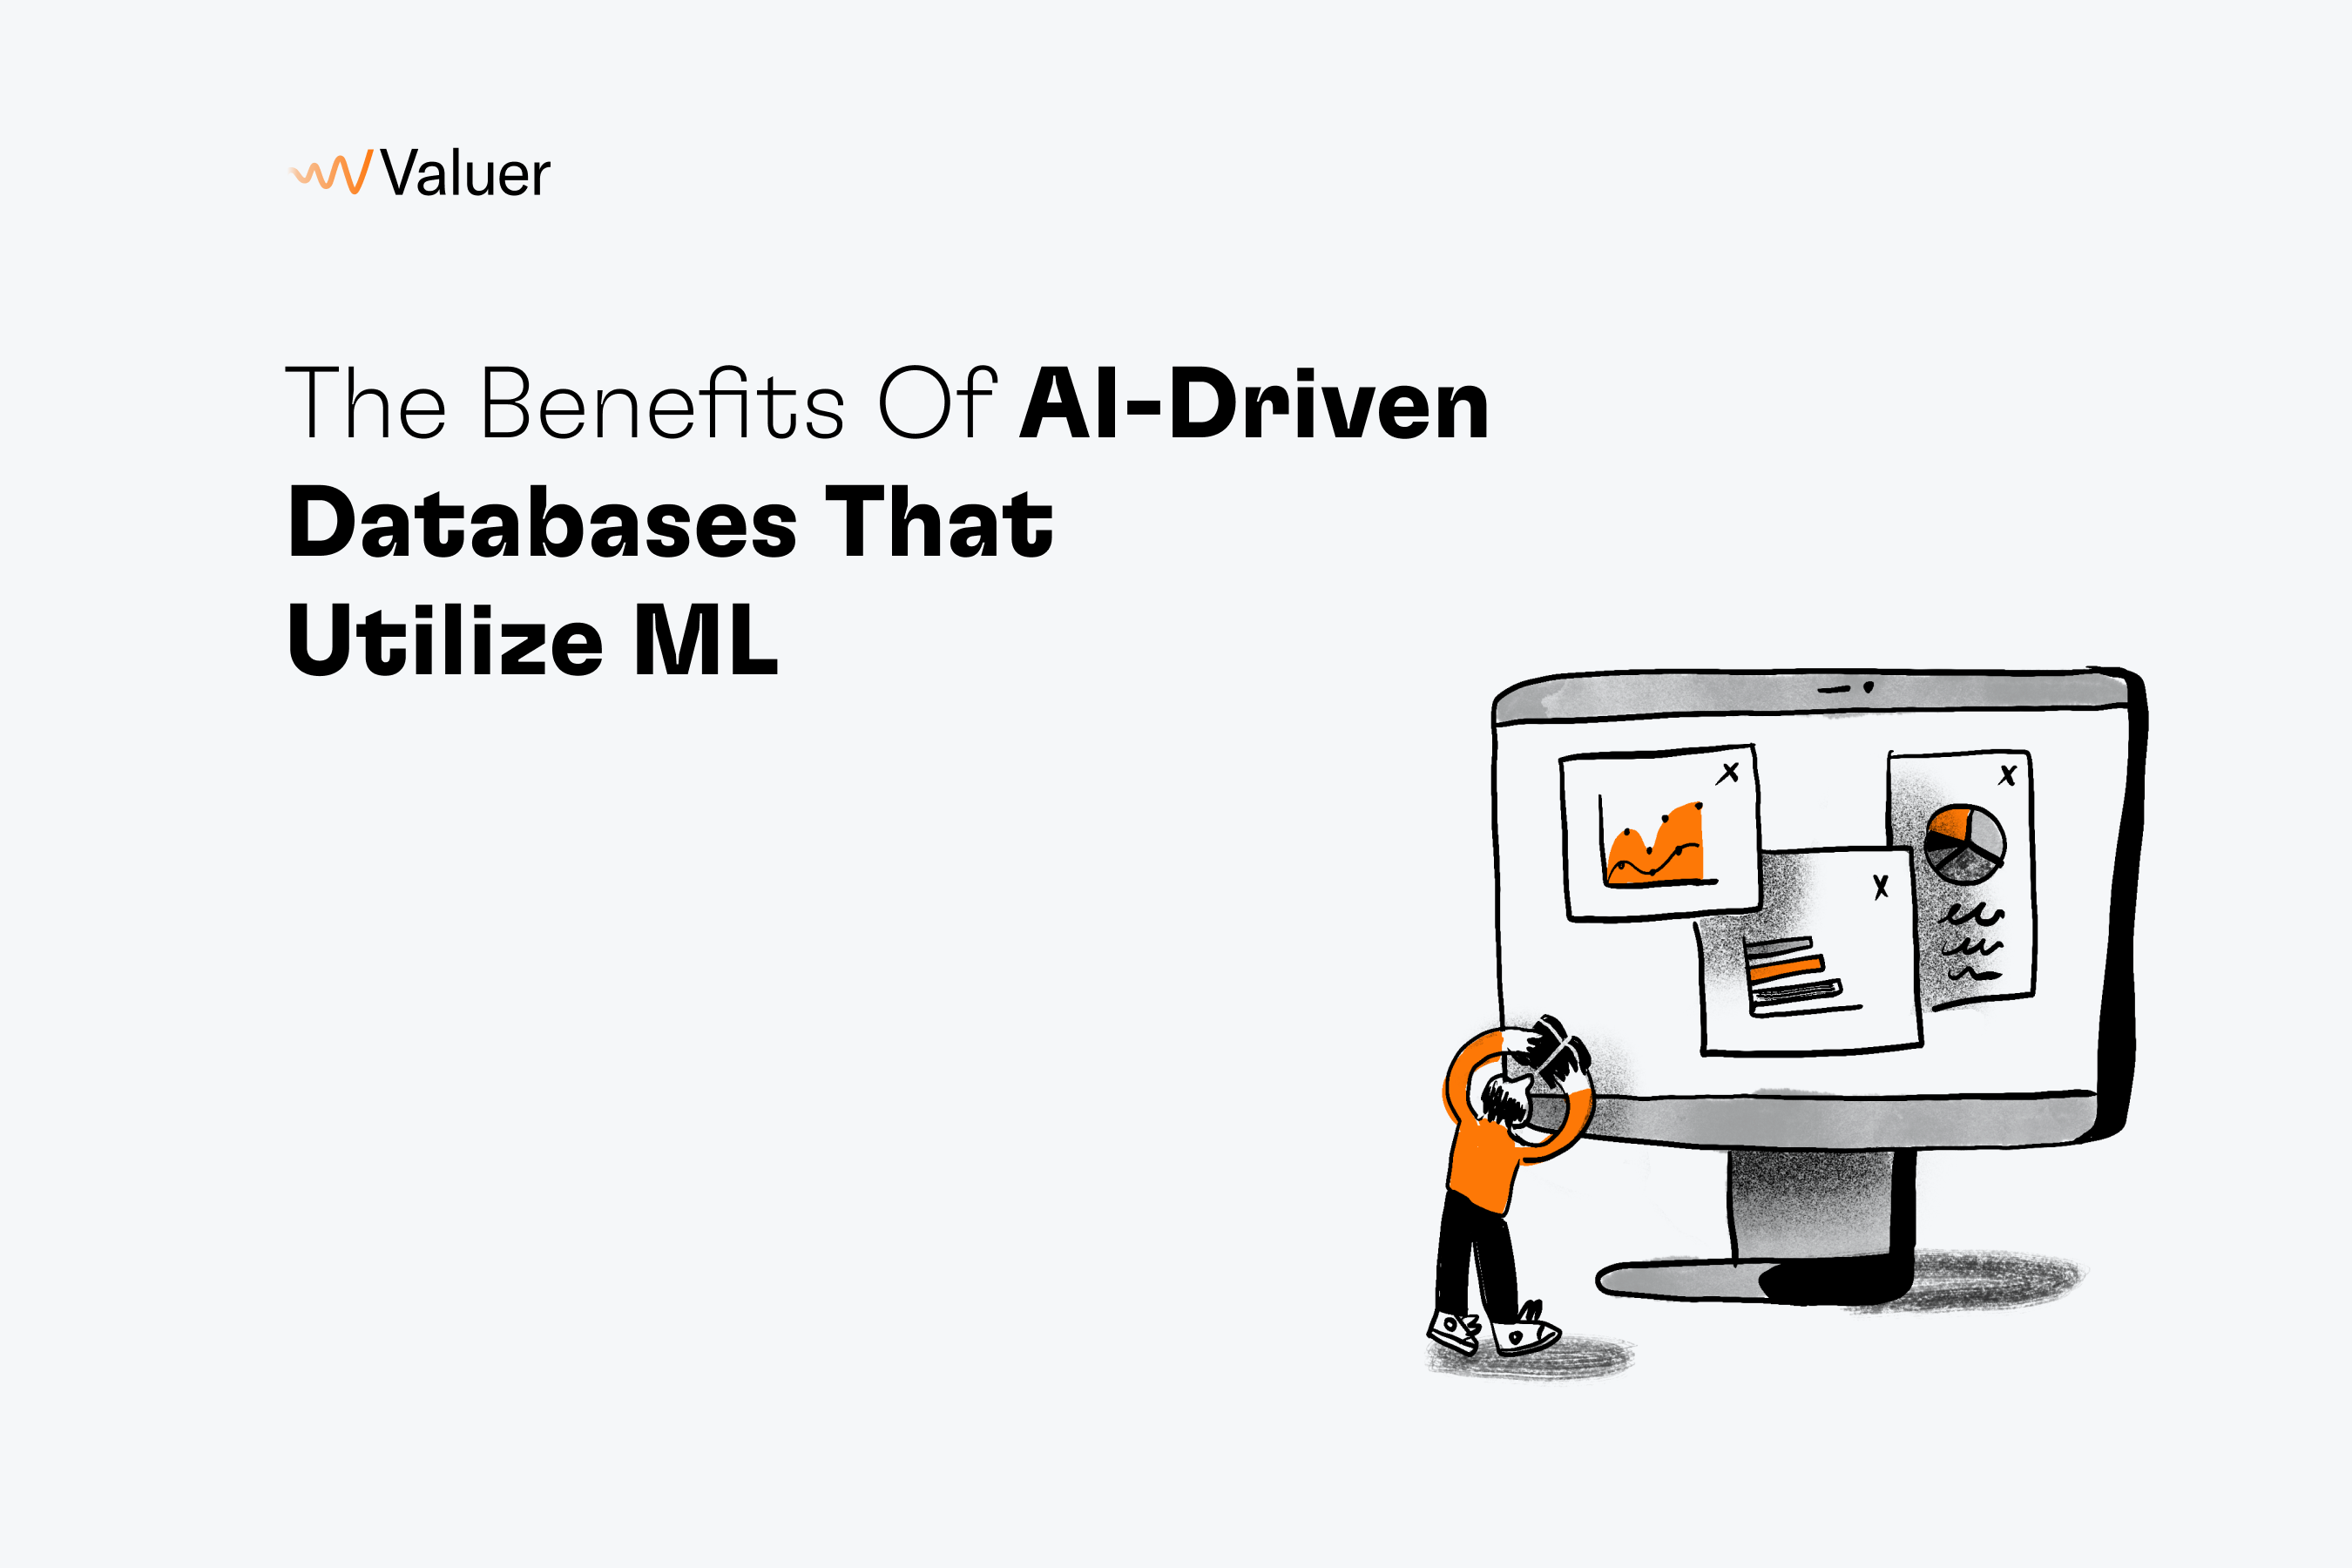 The benefits of AI-driven databases that utilize ML